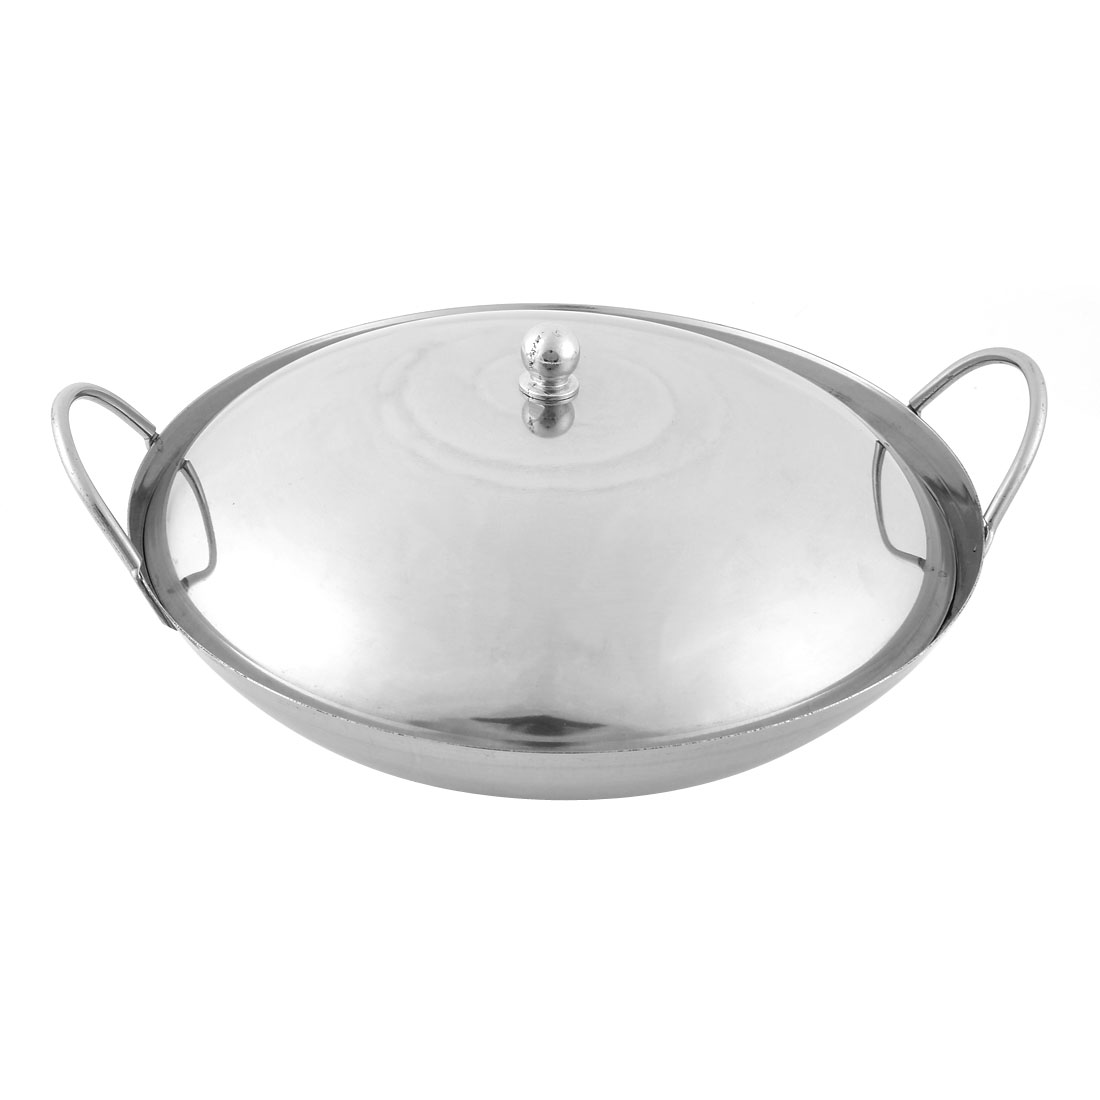 Home Restaurant Stainless Steel Chafing Dish Pot Silver Tone w Lid Cover